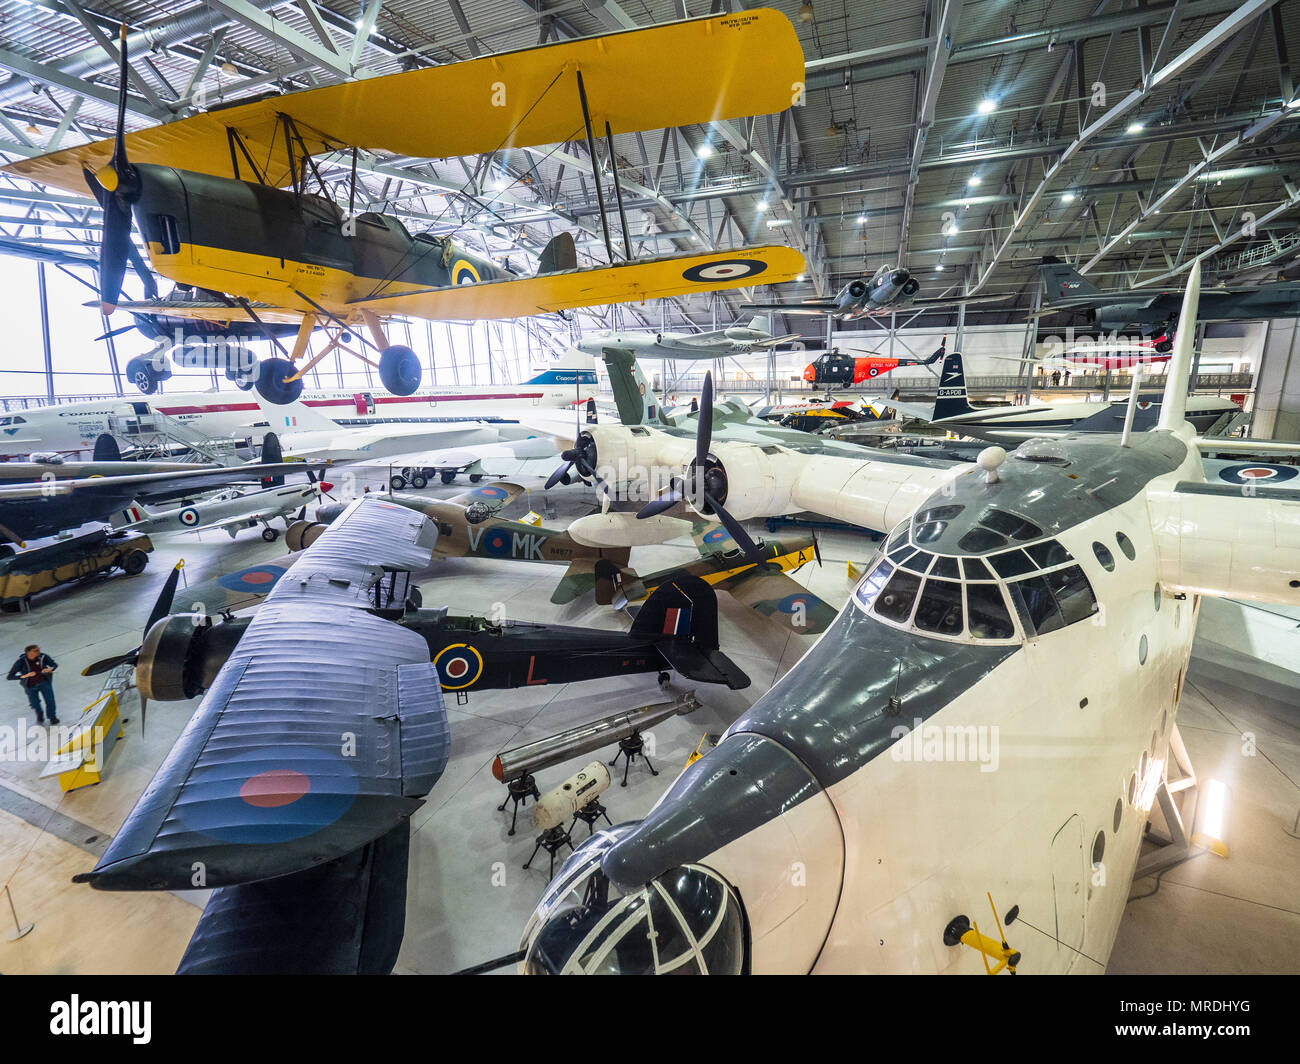 Duxford IWM - Imperial War Museum Duxford - the largest aviation museum in the UK - photo inside the Airspace Hanger which opened in 2008 - Stock Image